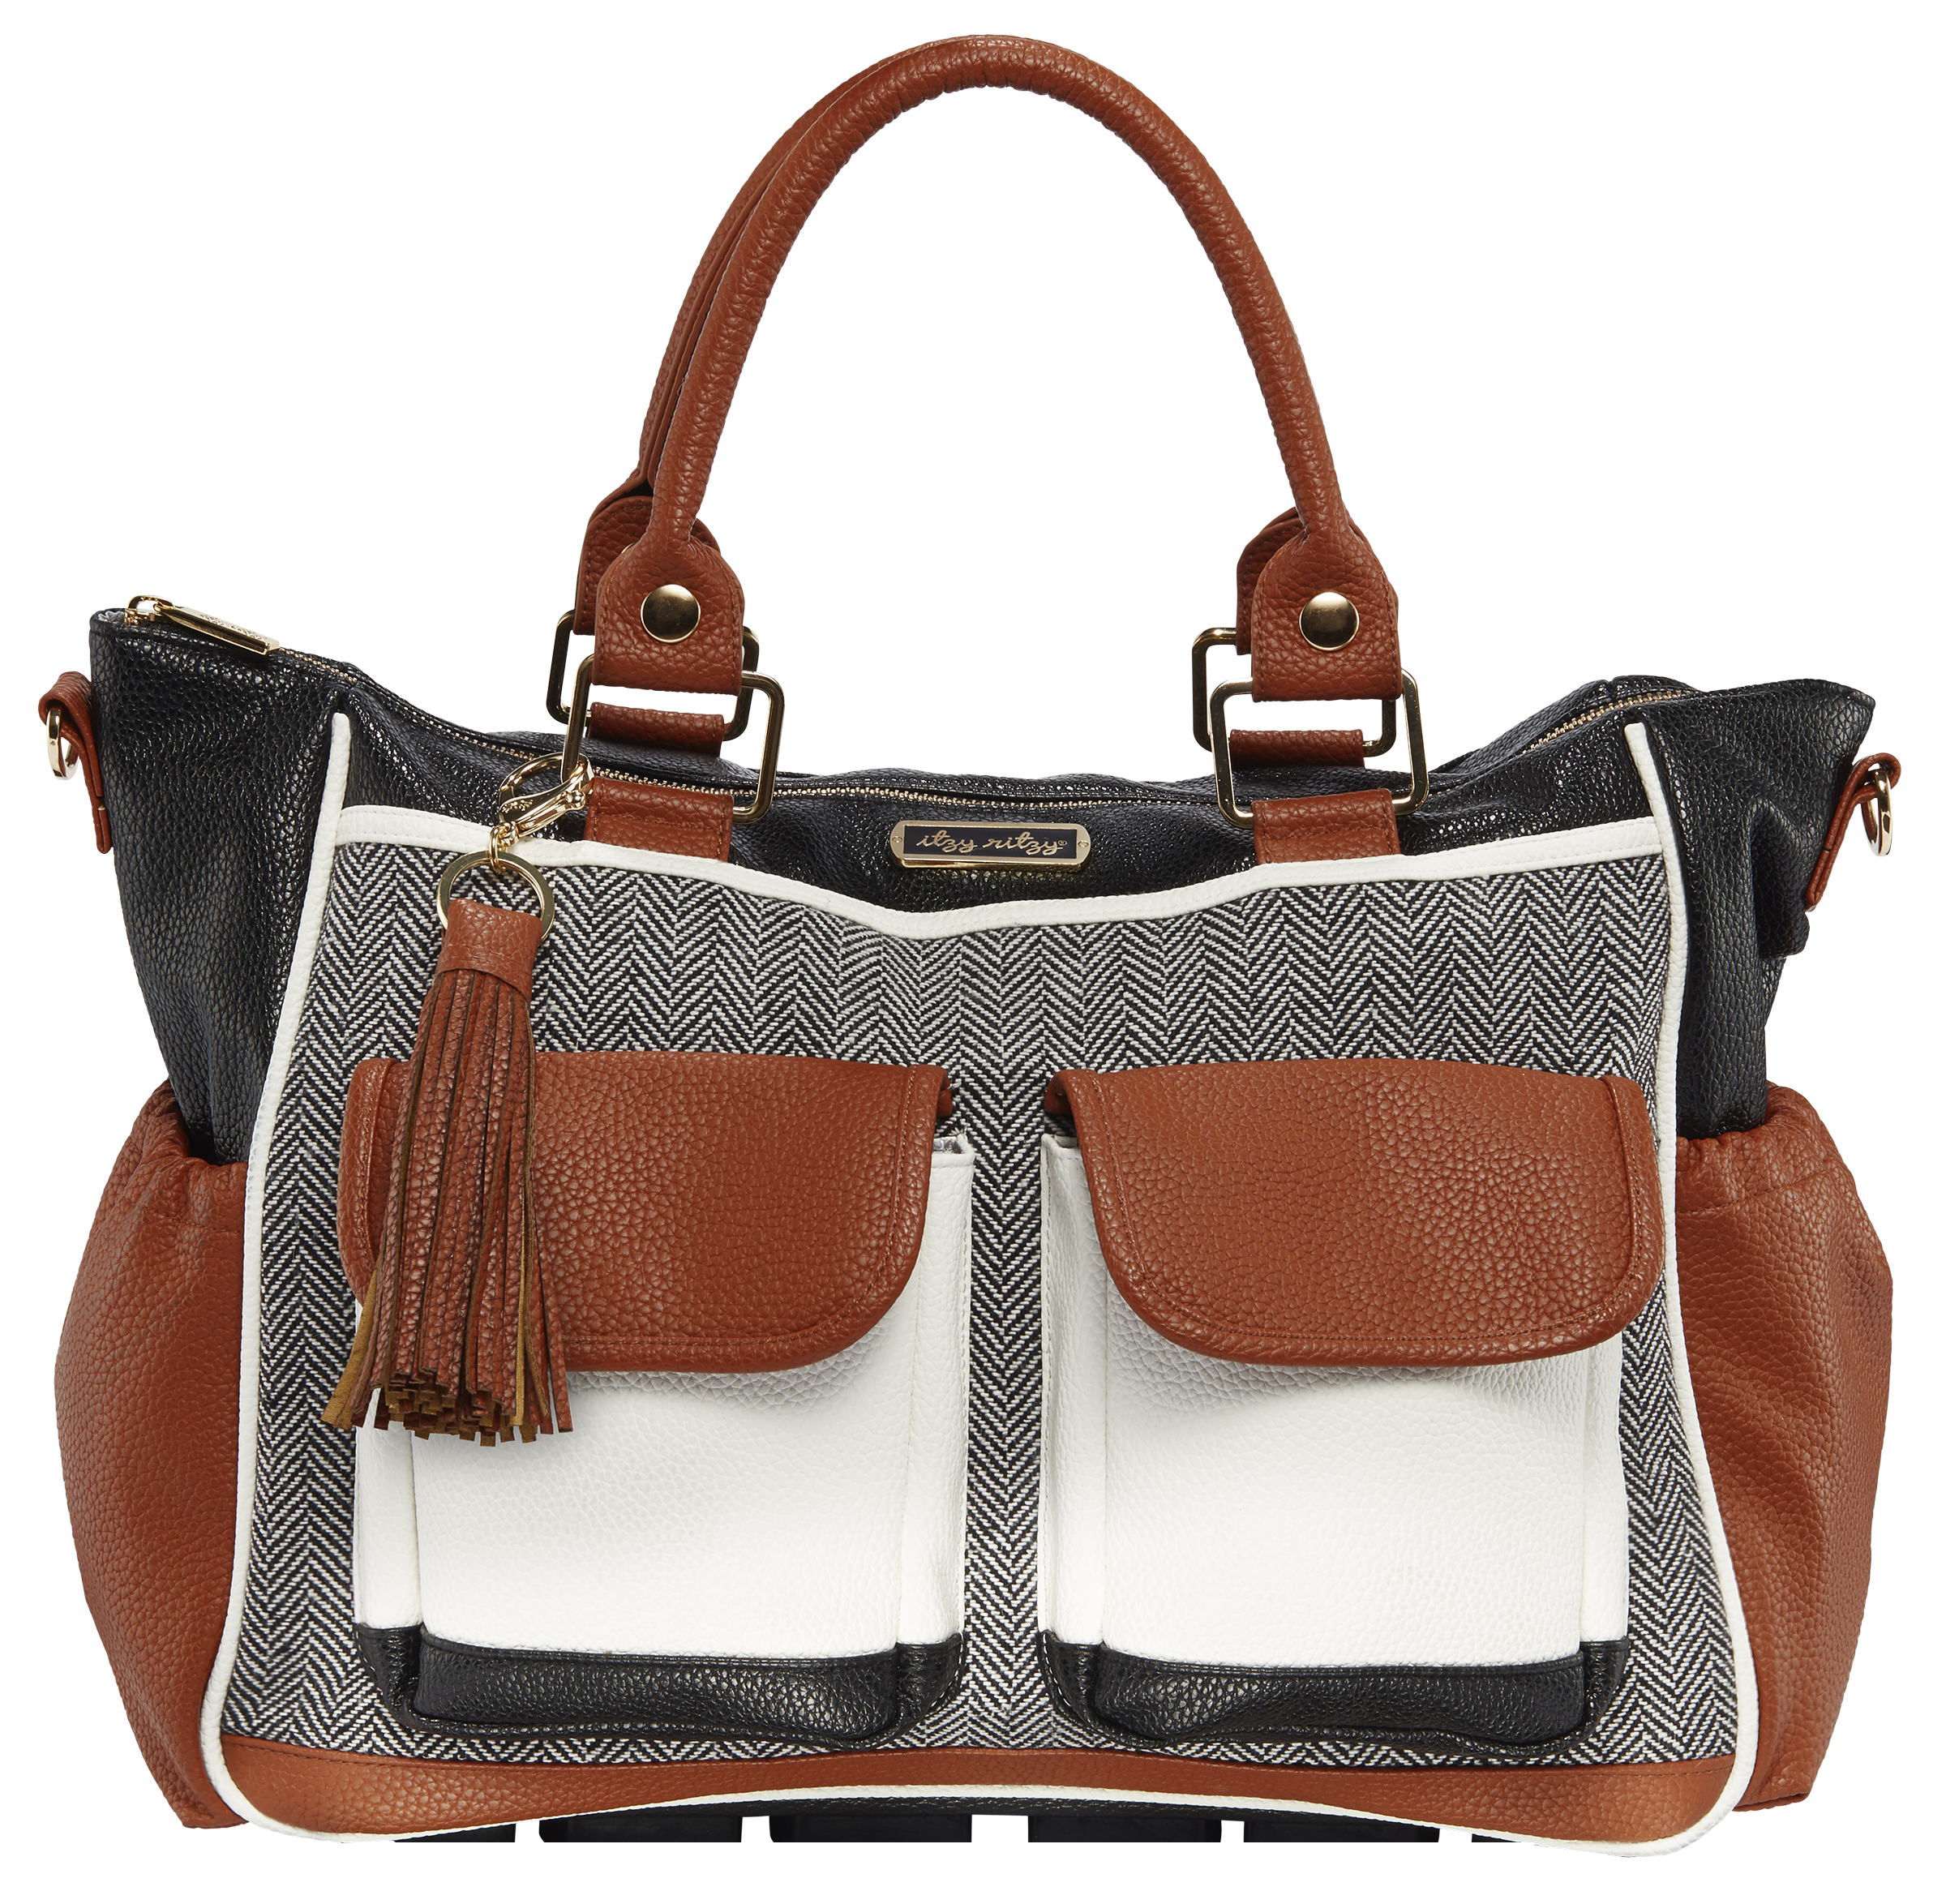 Itzy Ritzy Triple Threat™ Convertible Diaper Bag in Coffee and Cream